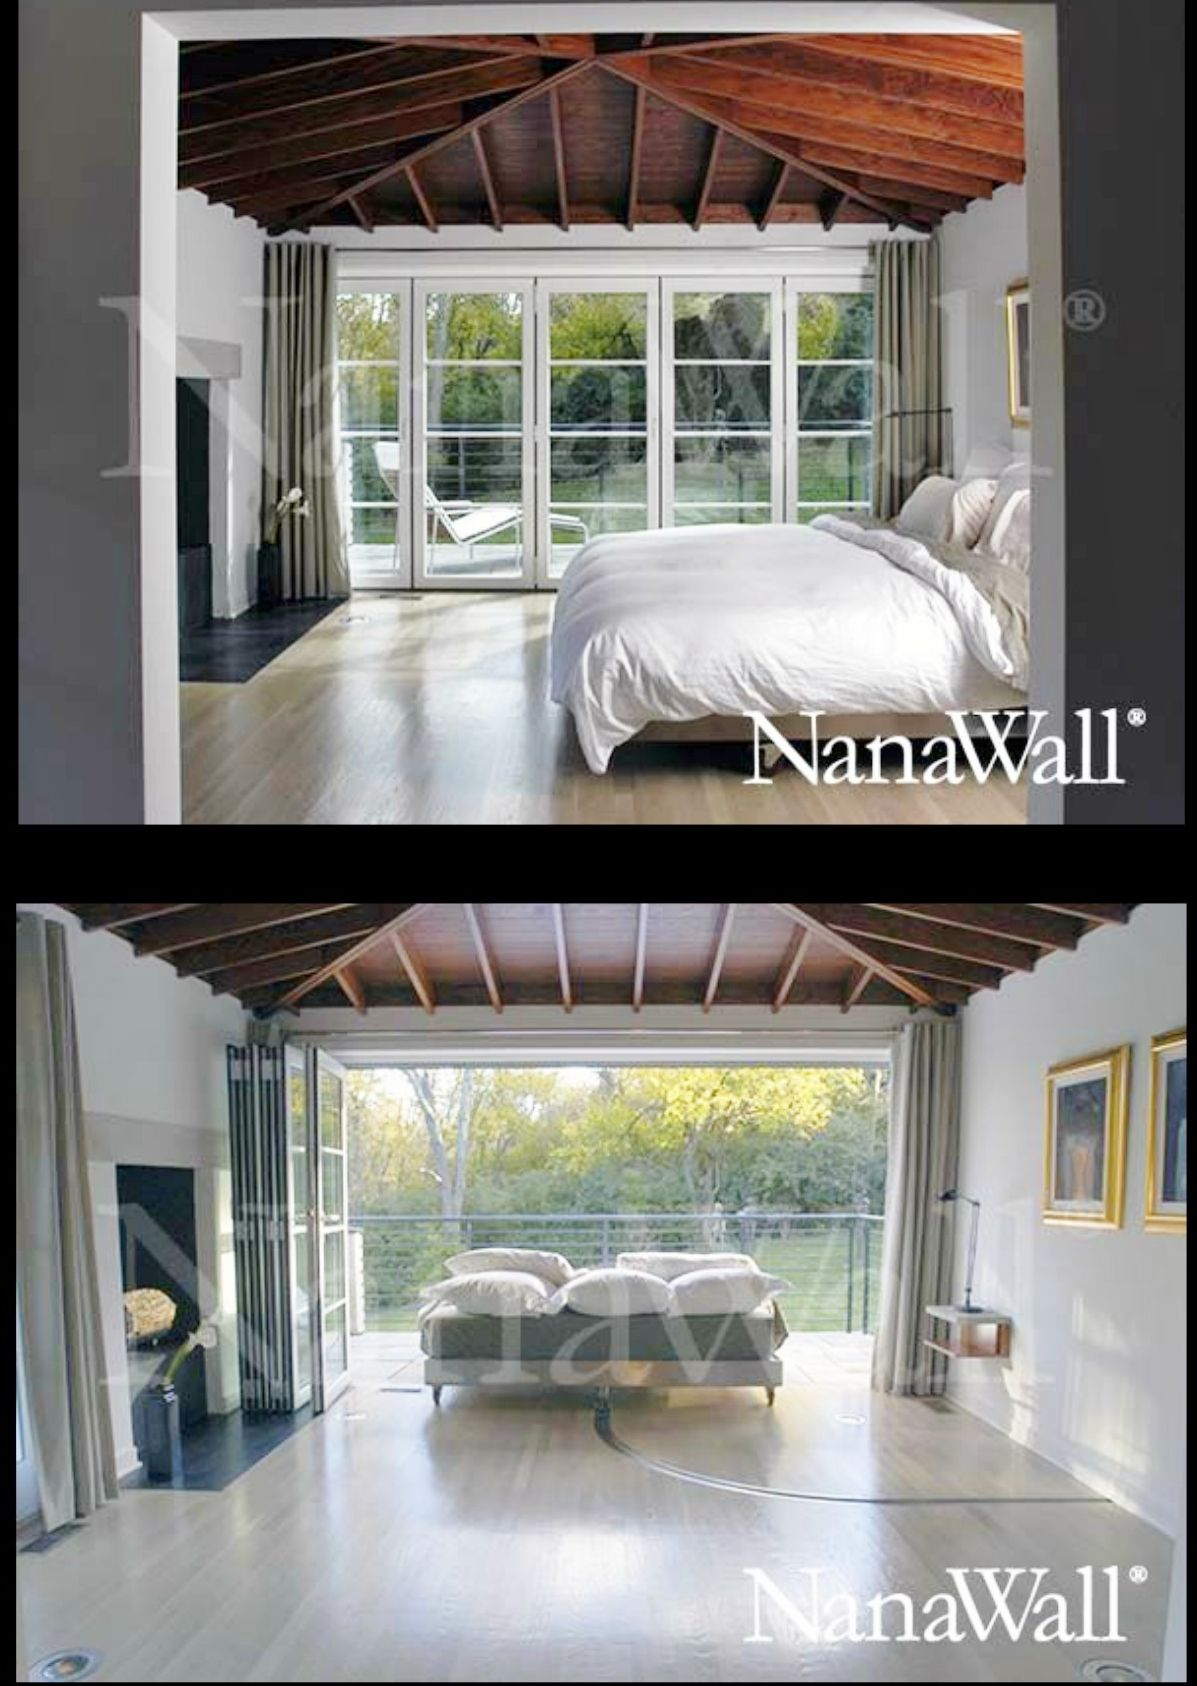 House design with sliding window  wow bed on a track  now thatus a cool bedroom nanawall sliding